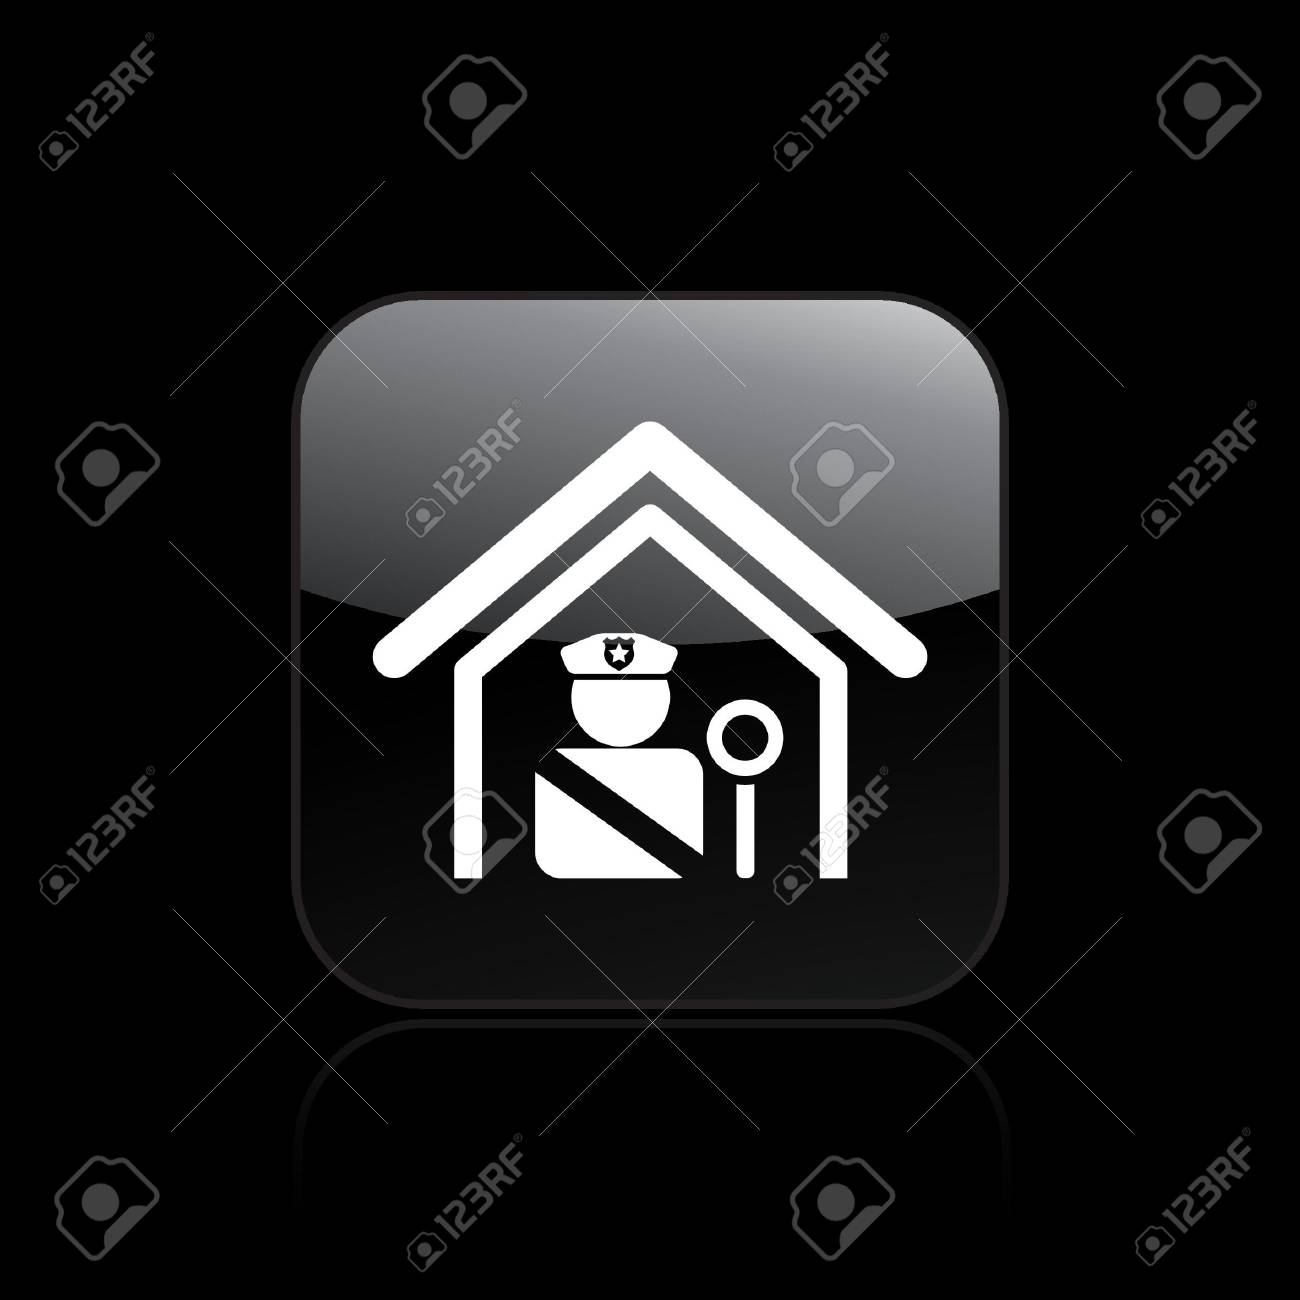 Vector illustration of single isolated police icon Stock Vector - 12127280